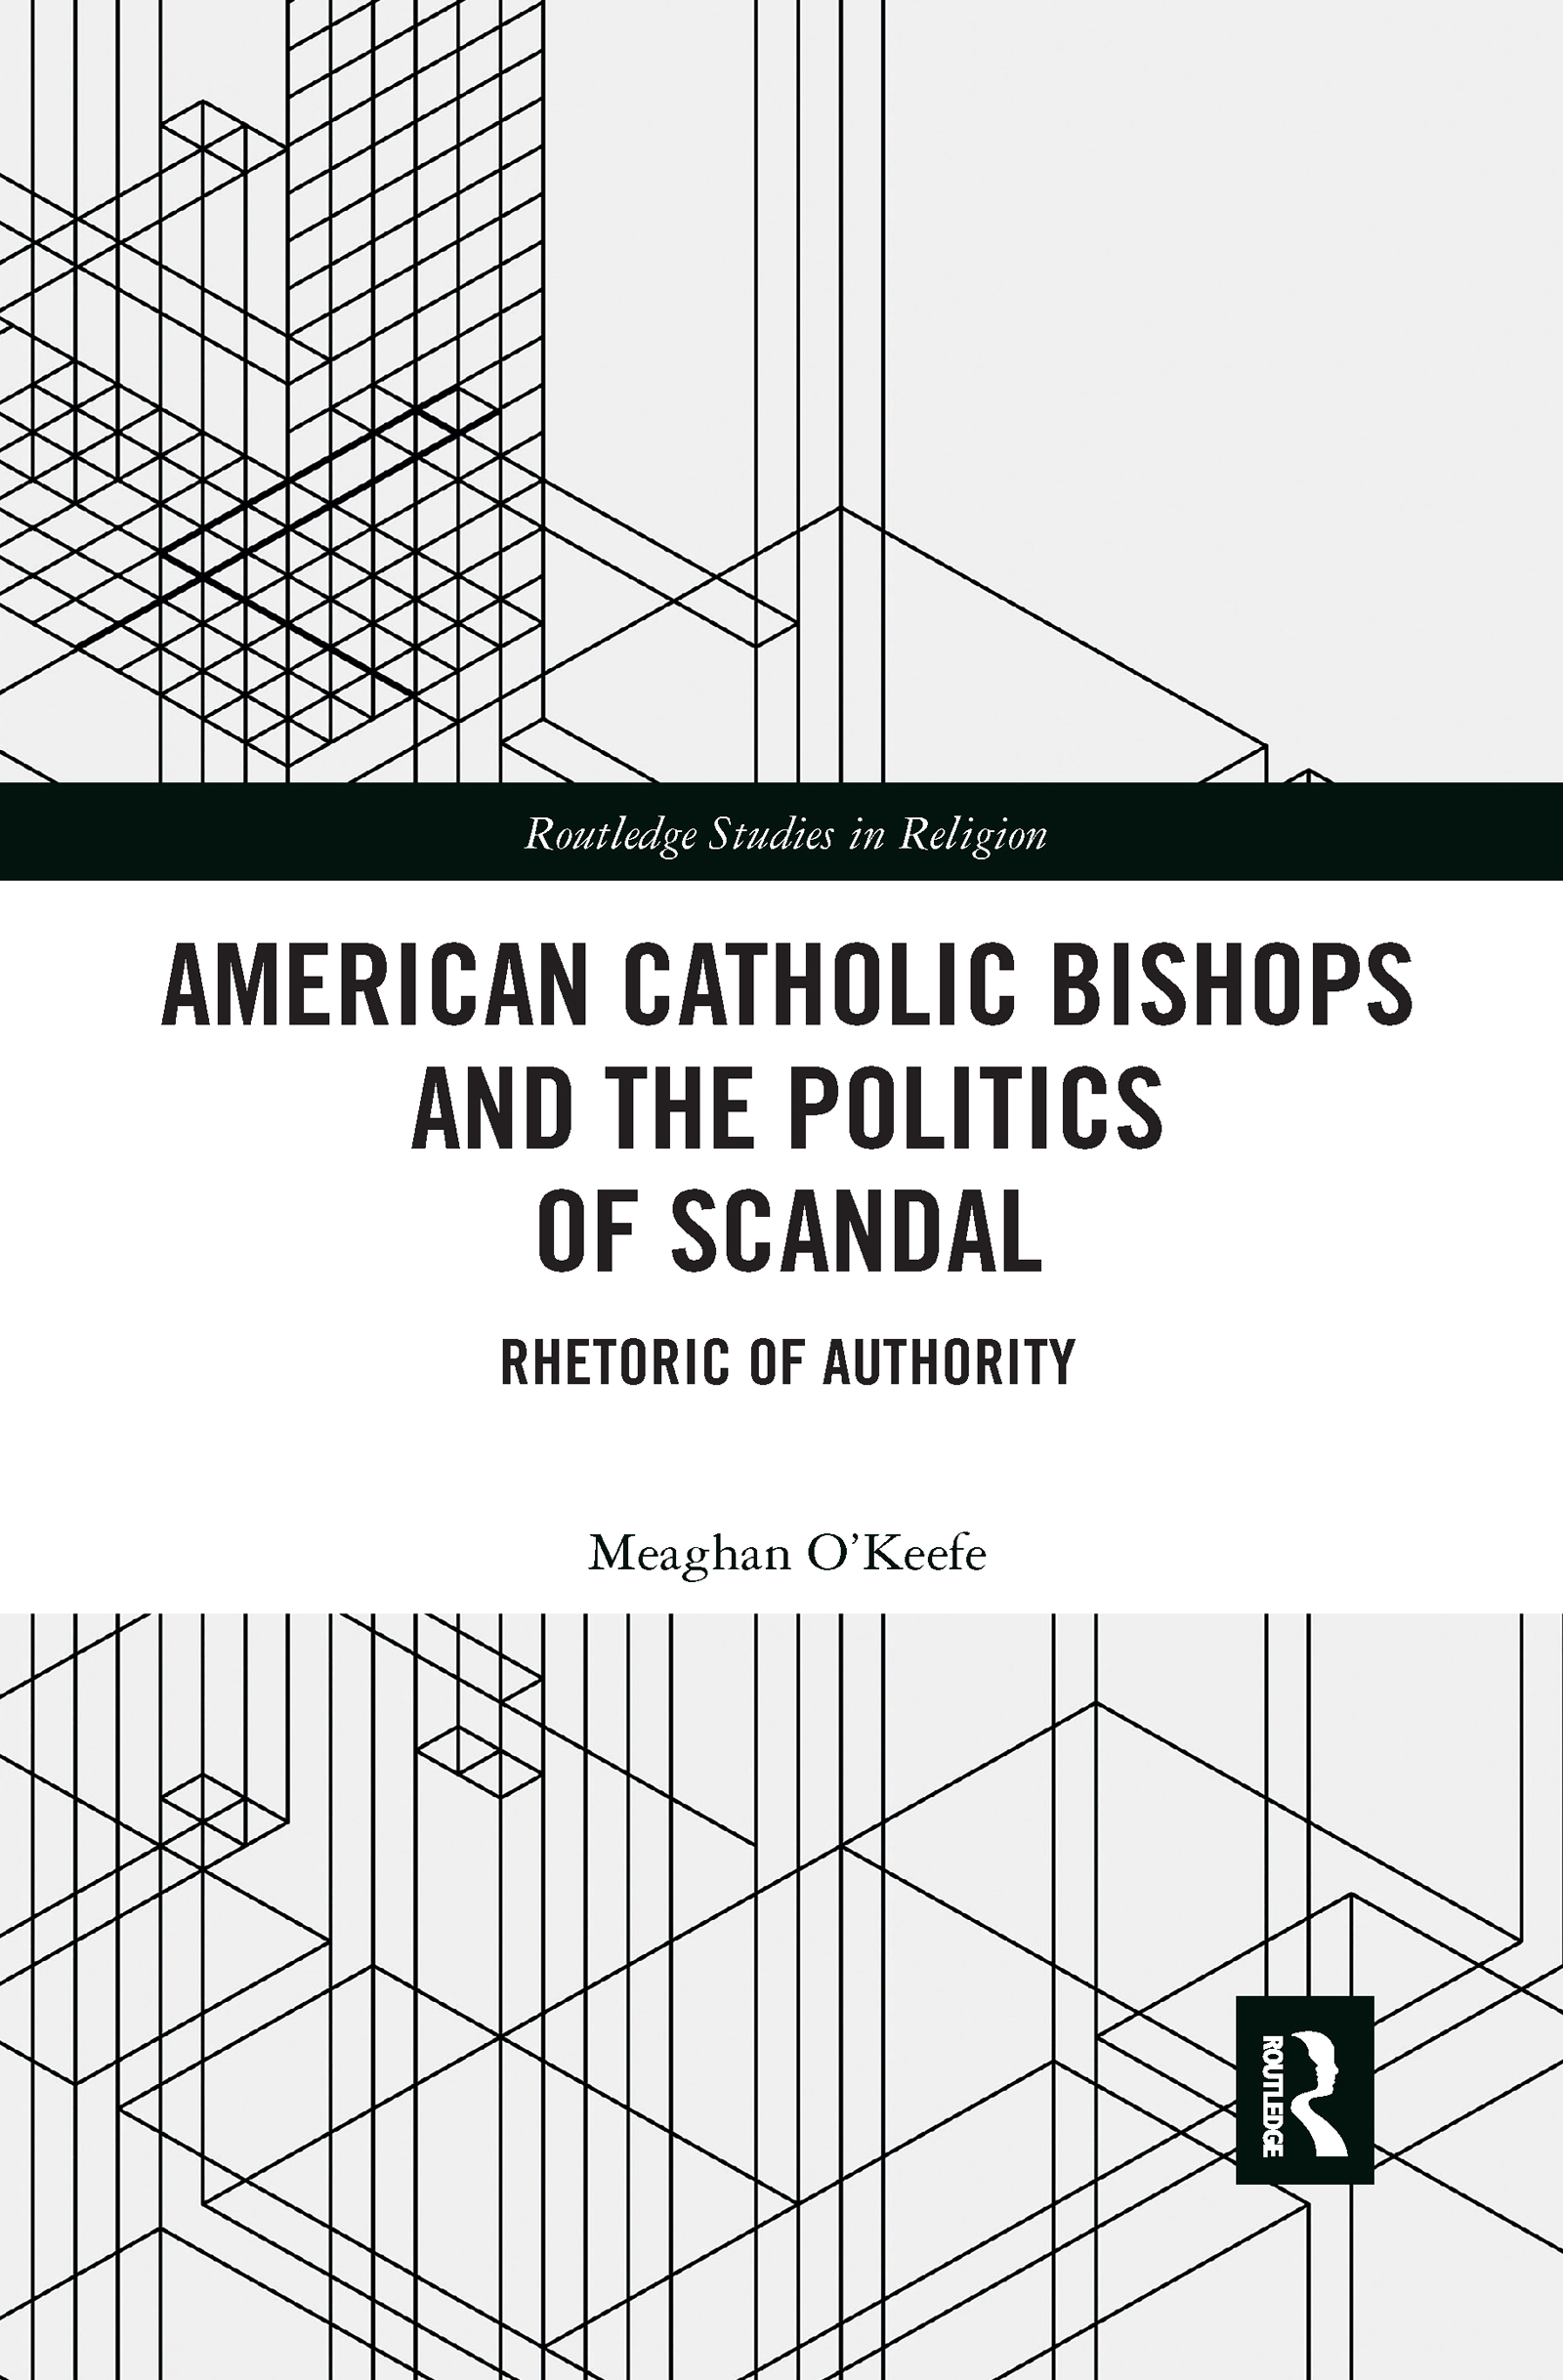 American Catholic Bishops and the Politics of Scandal